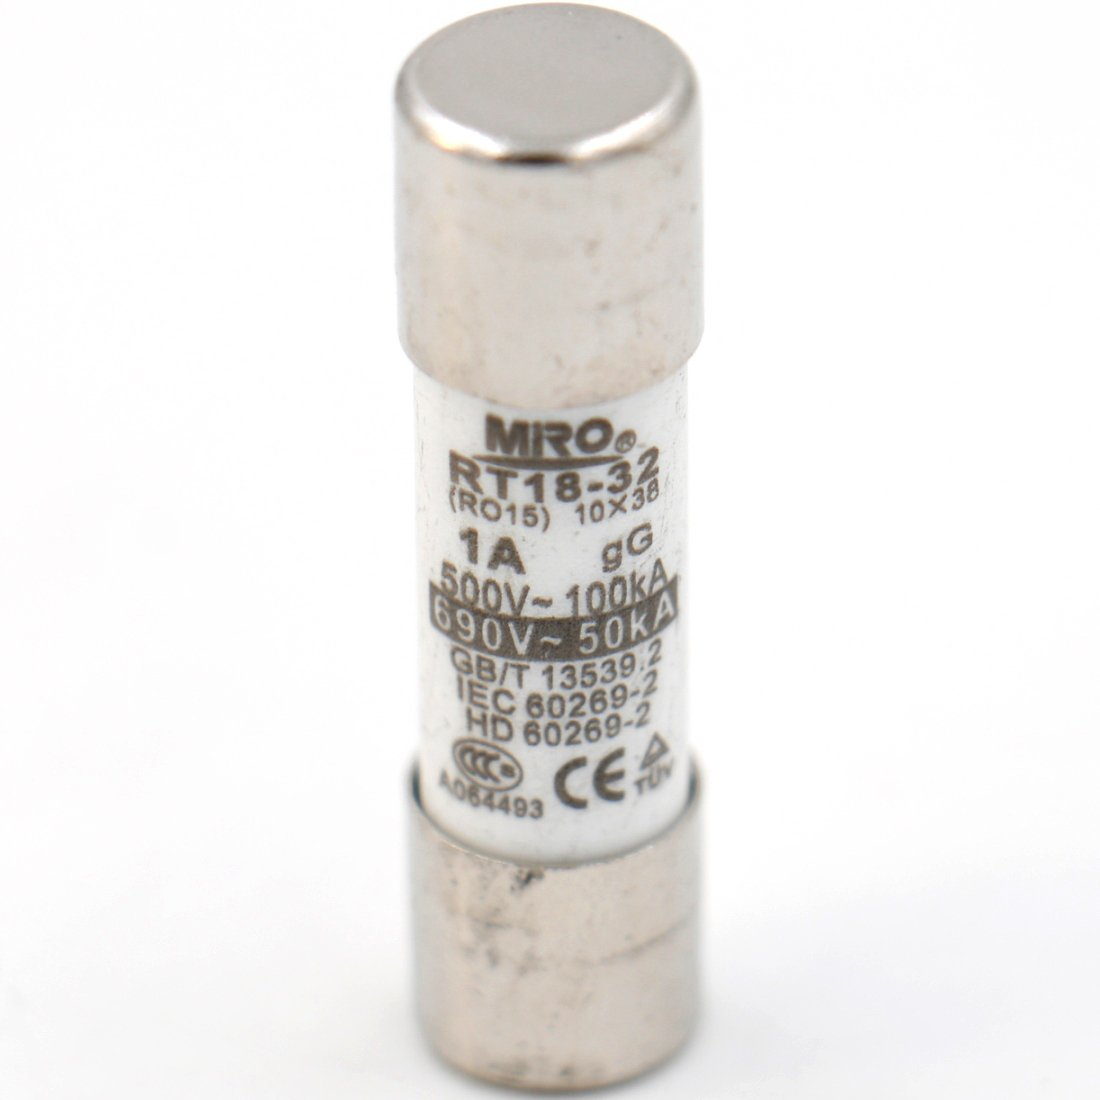 RO15 RT14 RT19 Baomain Fuse Link RT18-32 Cylindrical Ceramic Tube 10x38mm 500V 1A CE T/üV Listed 10 Pack Miro Electric